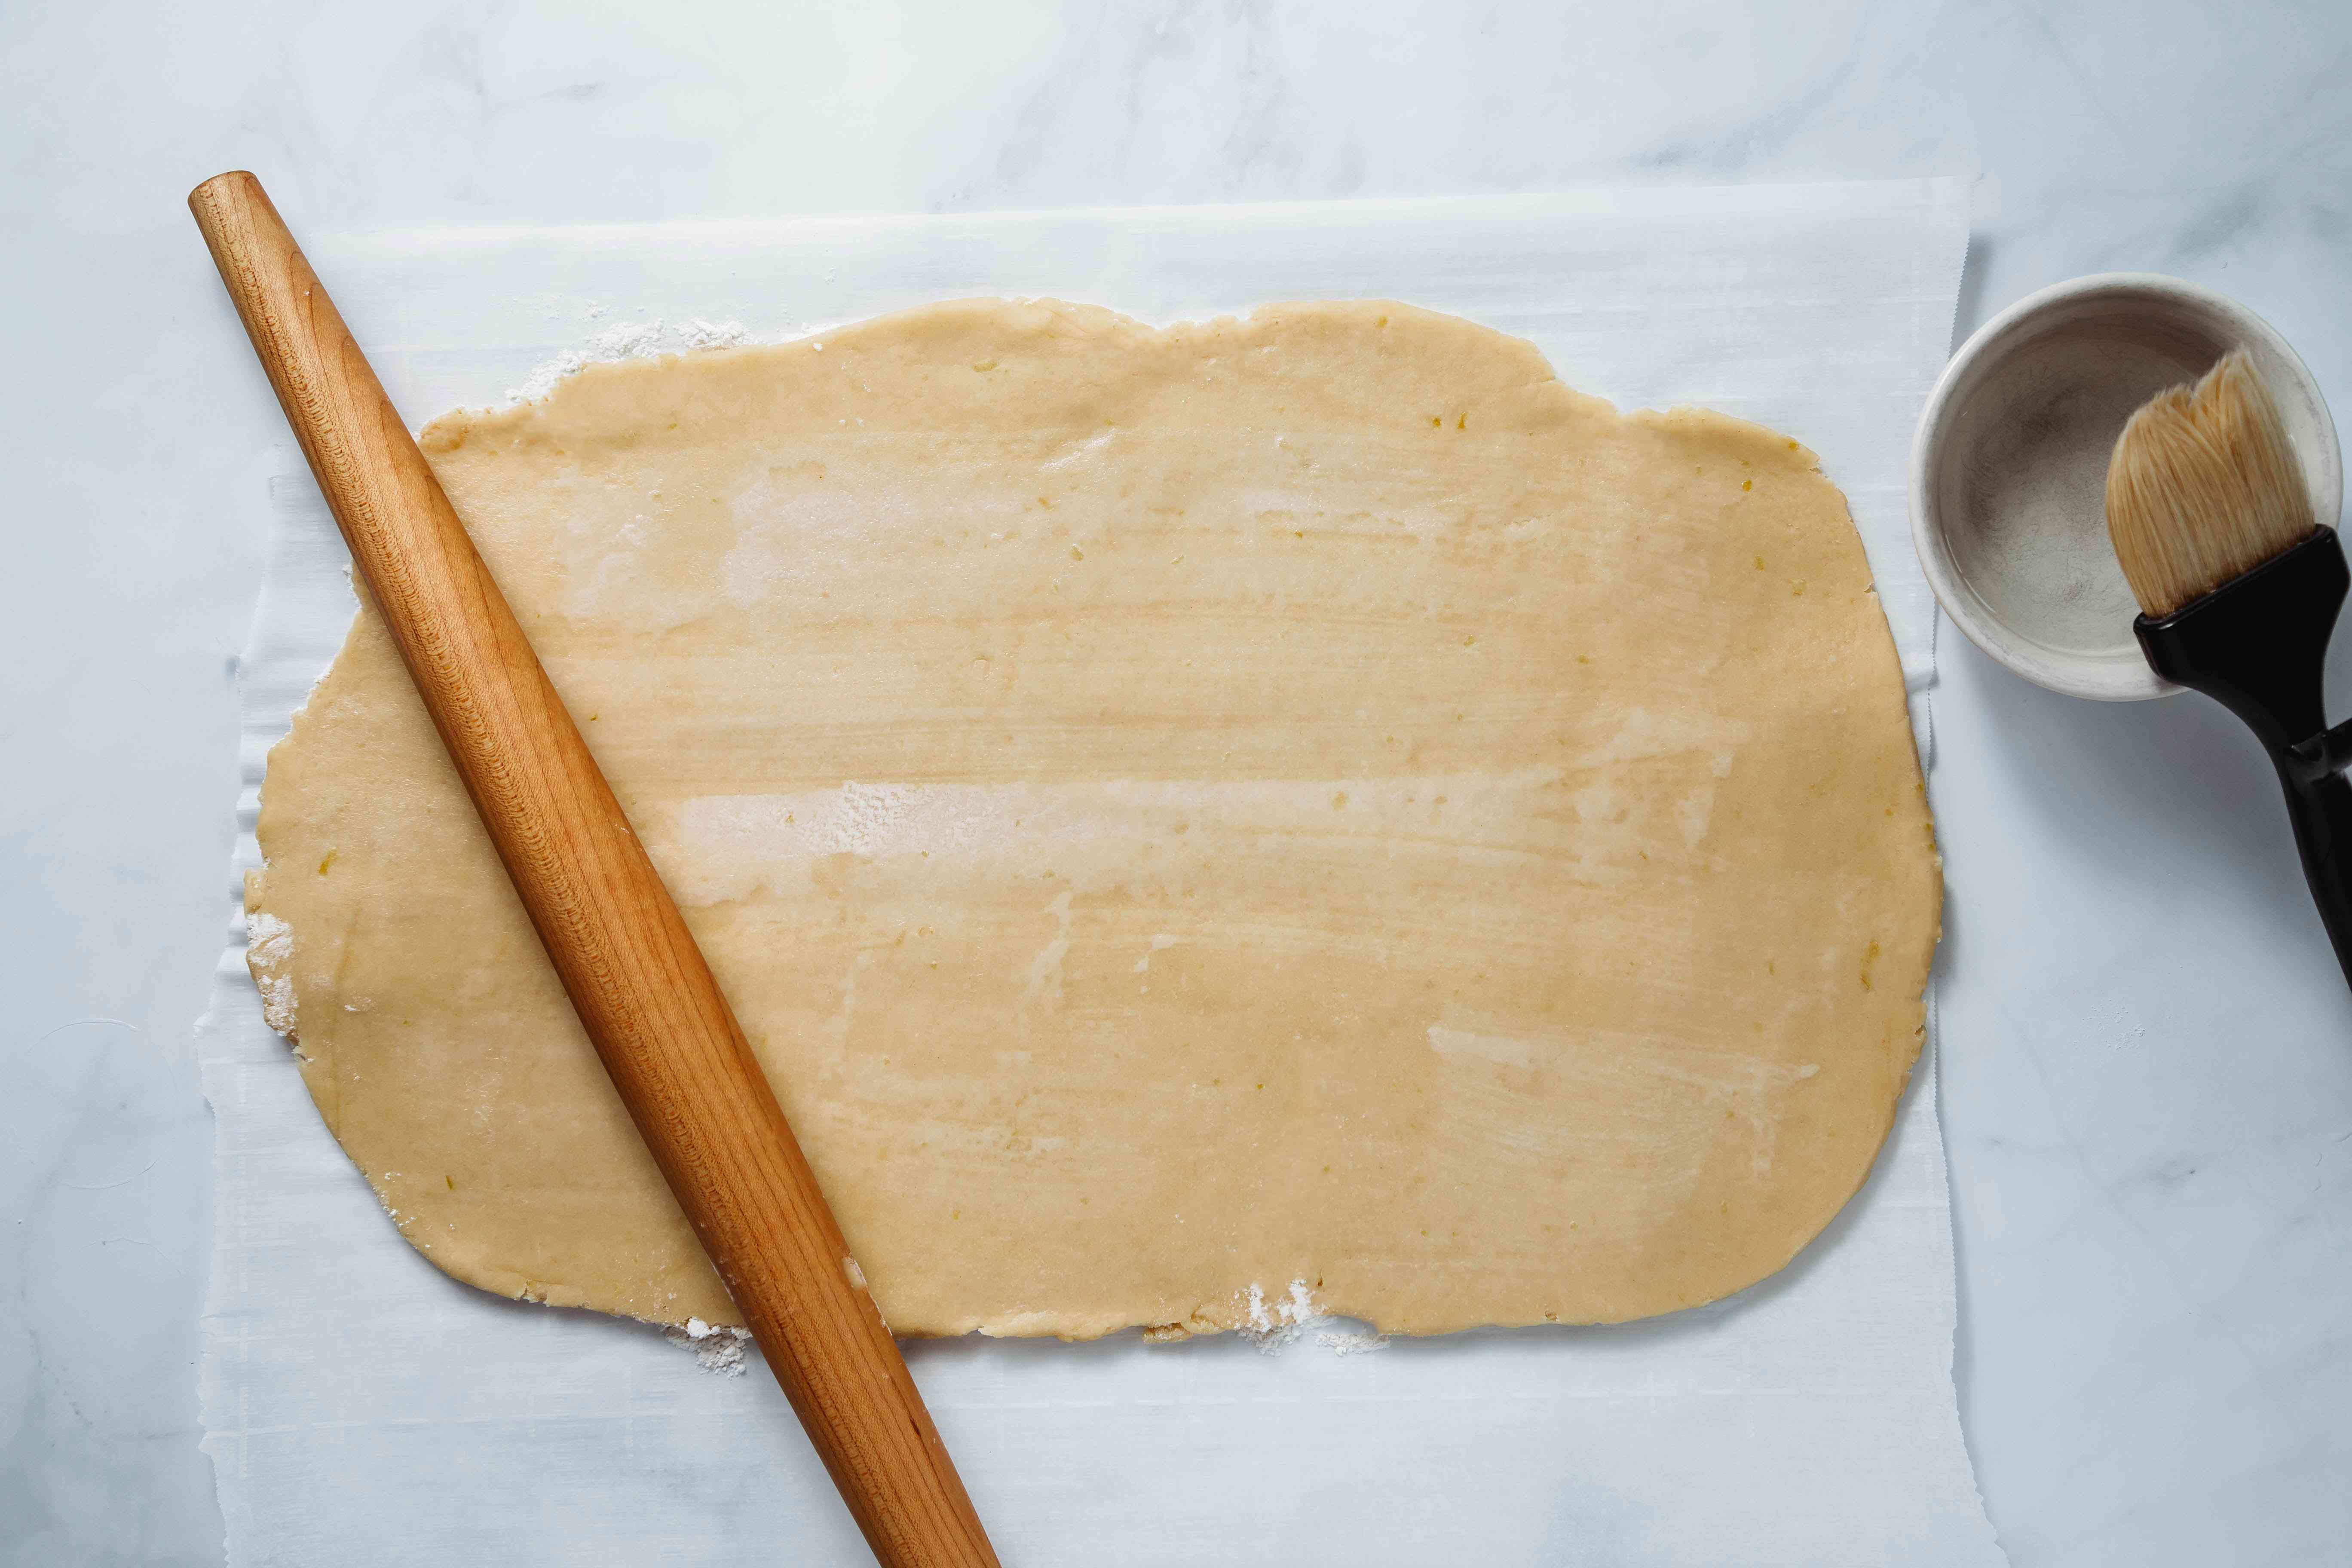 dough rolled out with rolling pin